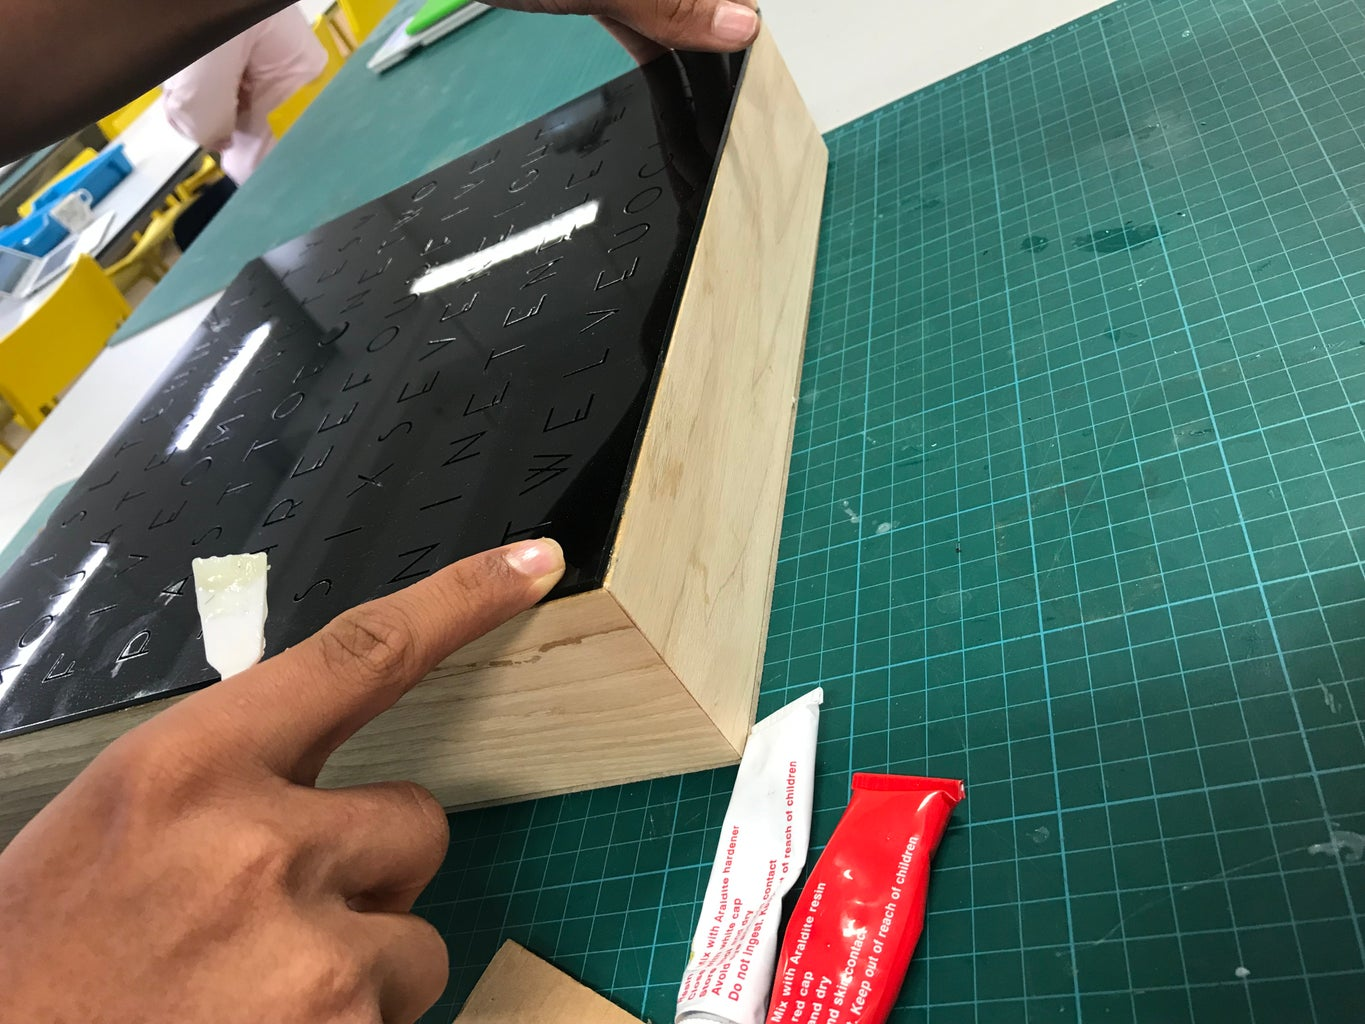 Glueing the Word Panel to the Frame